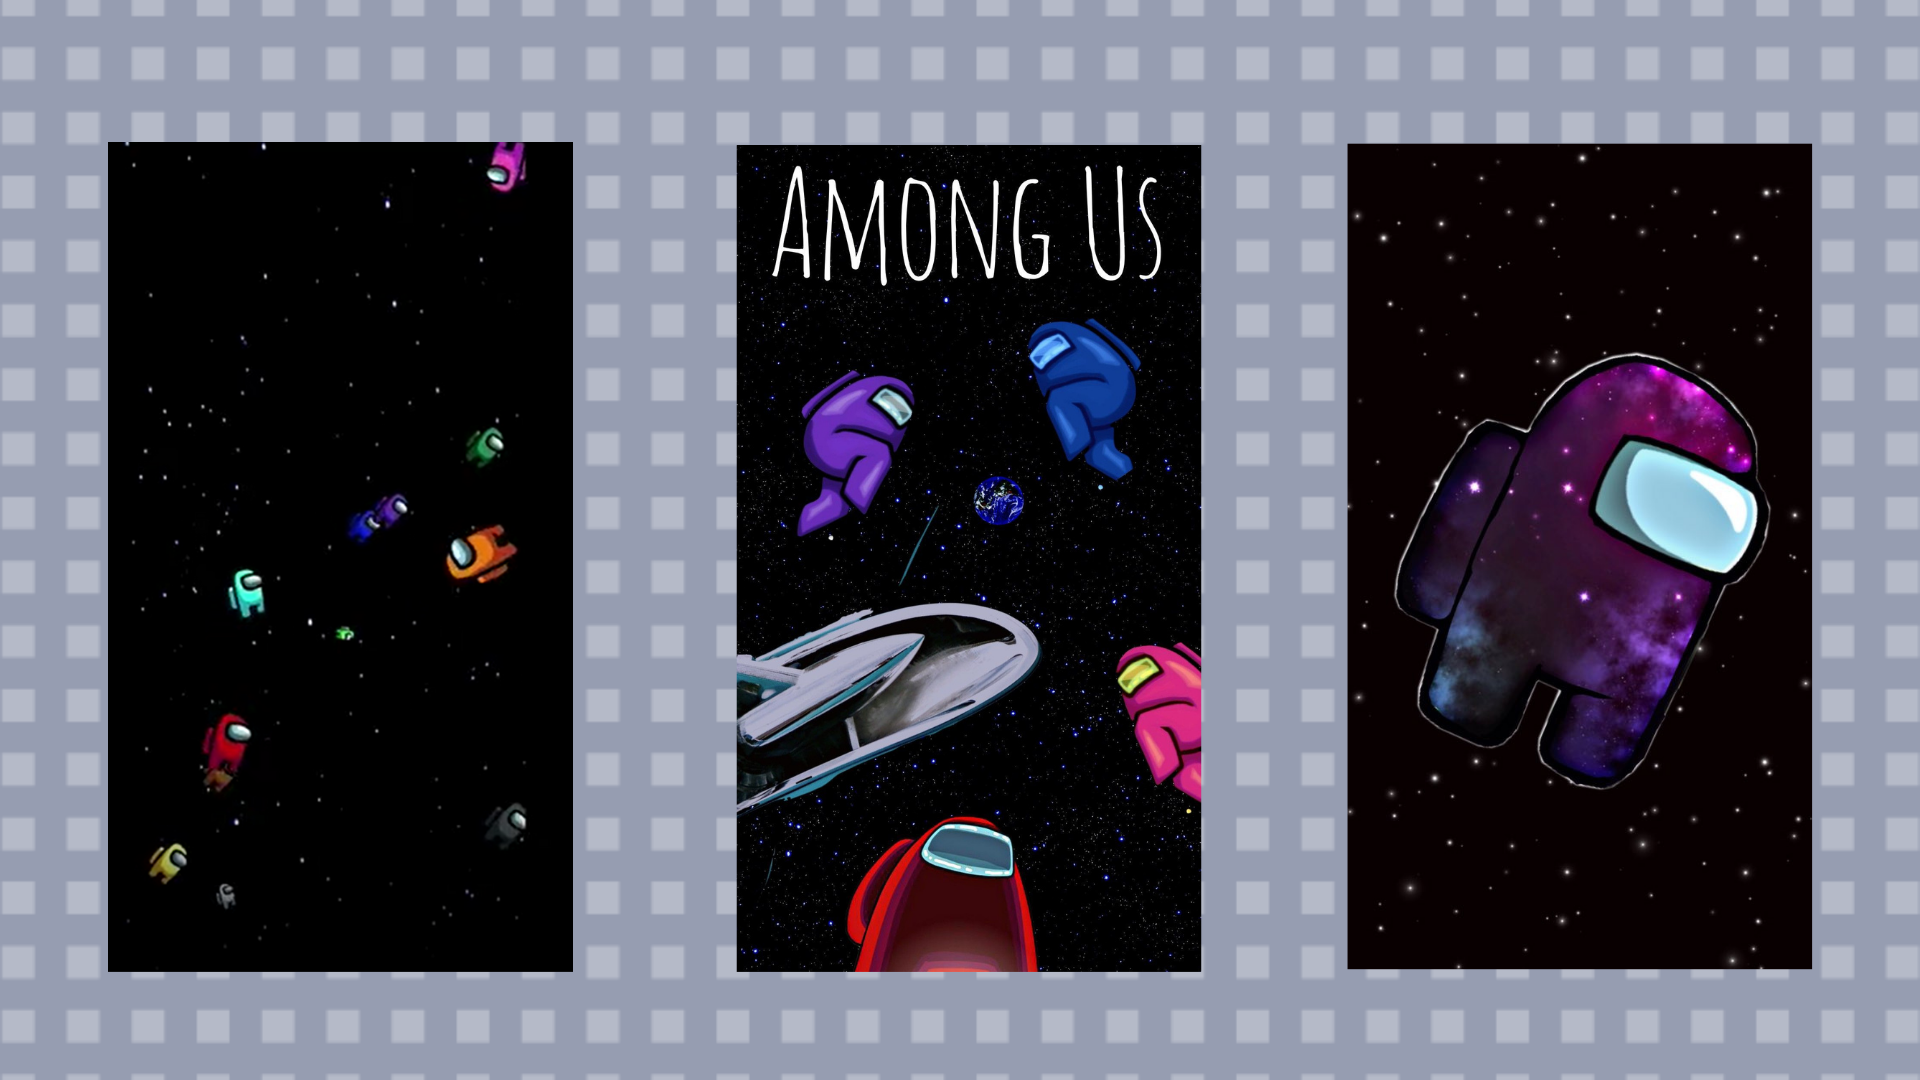 15 Cool Among Us Space Background Images Download